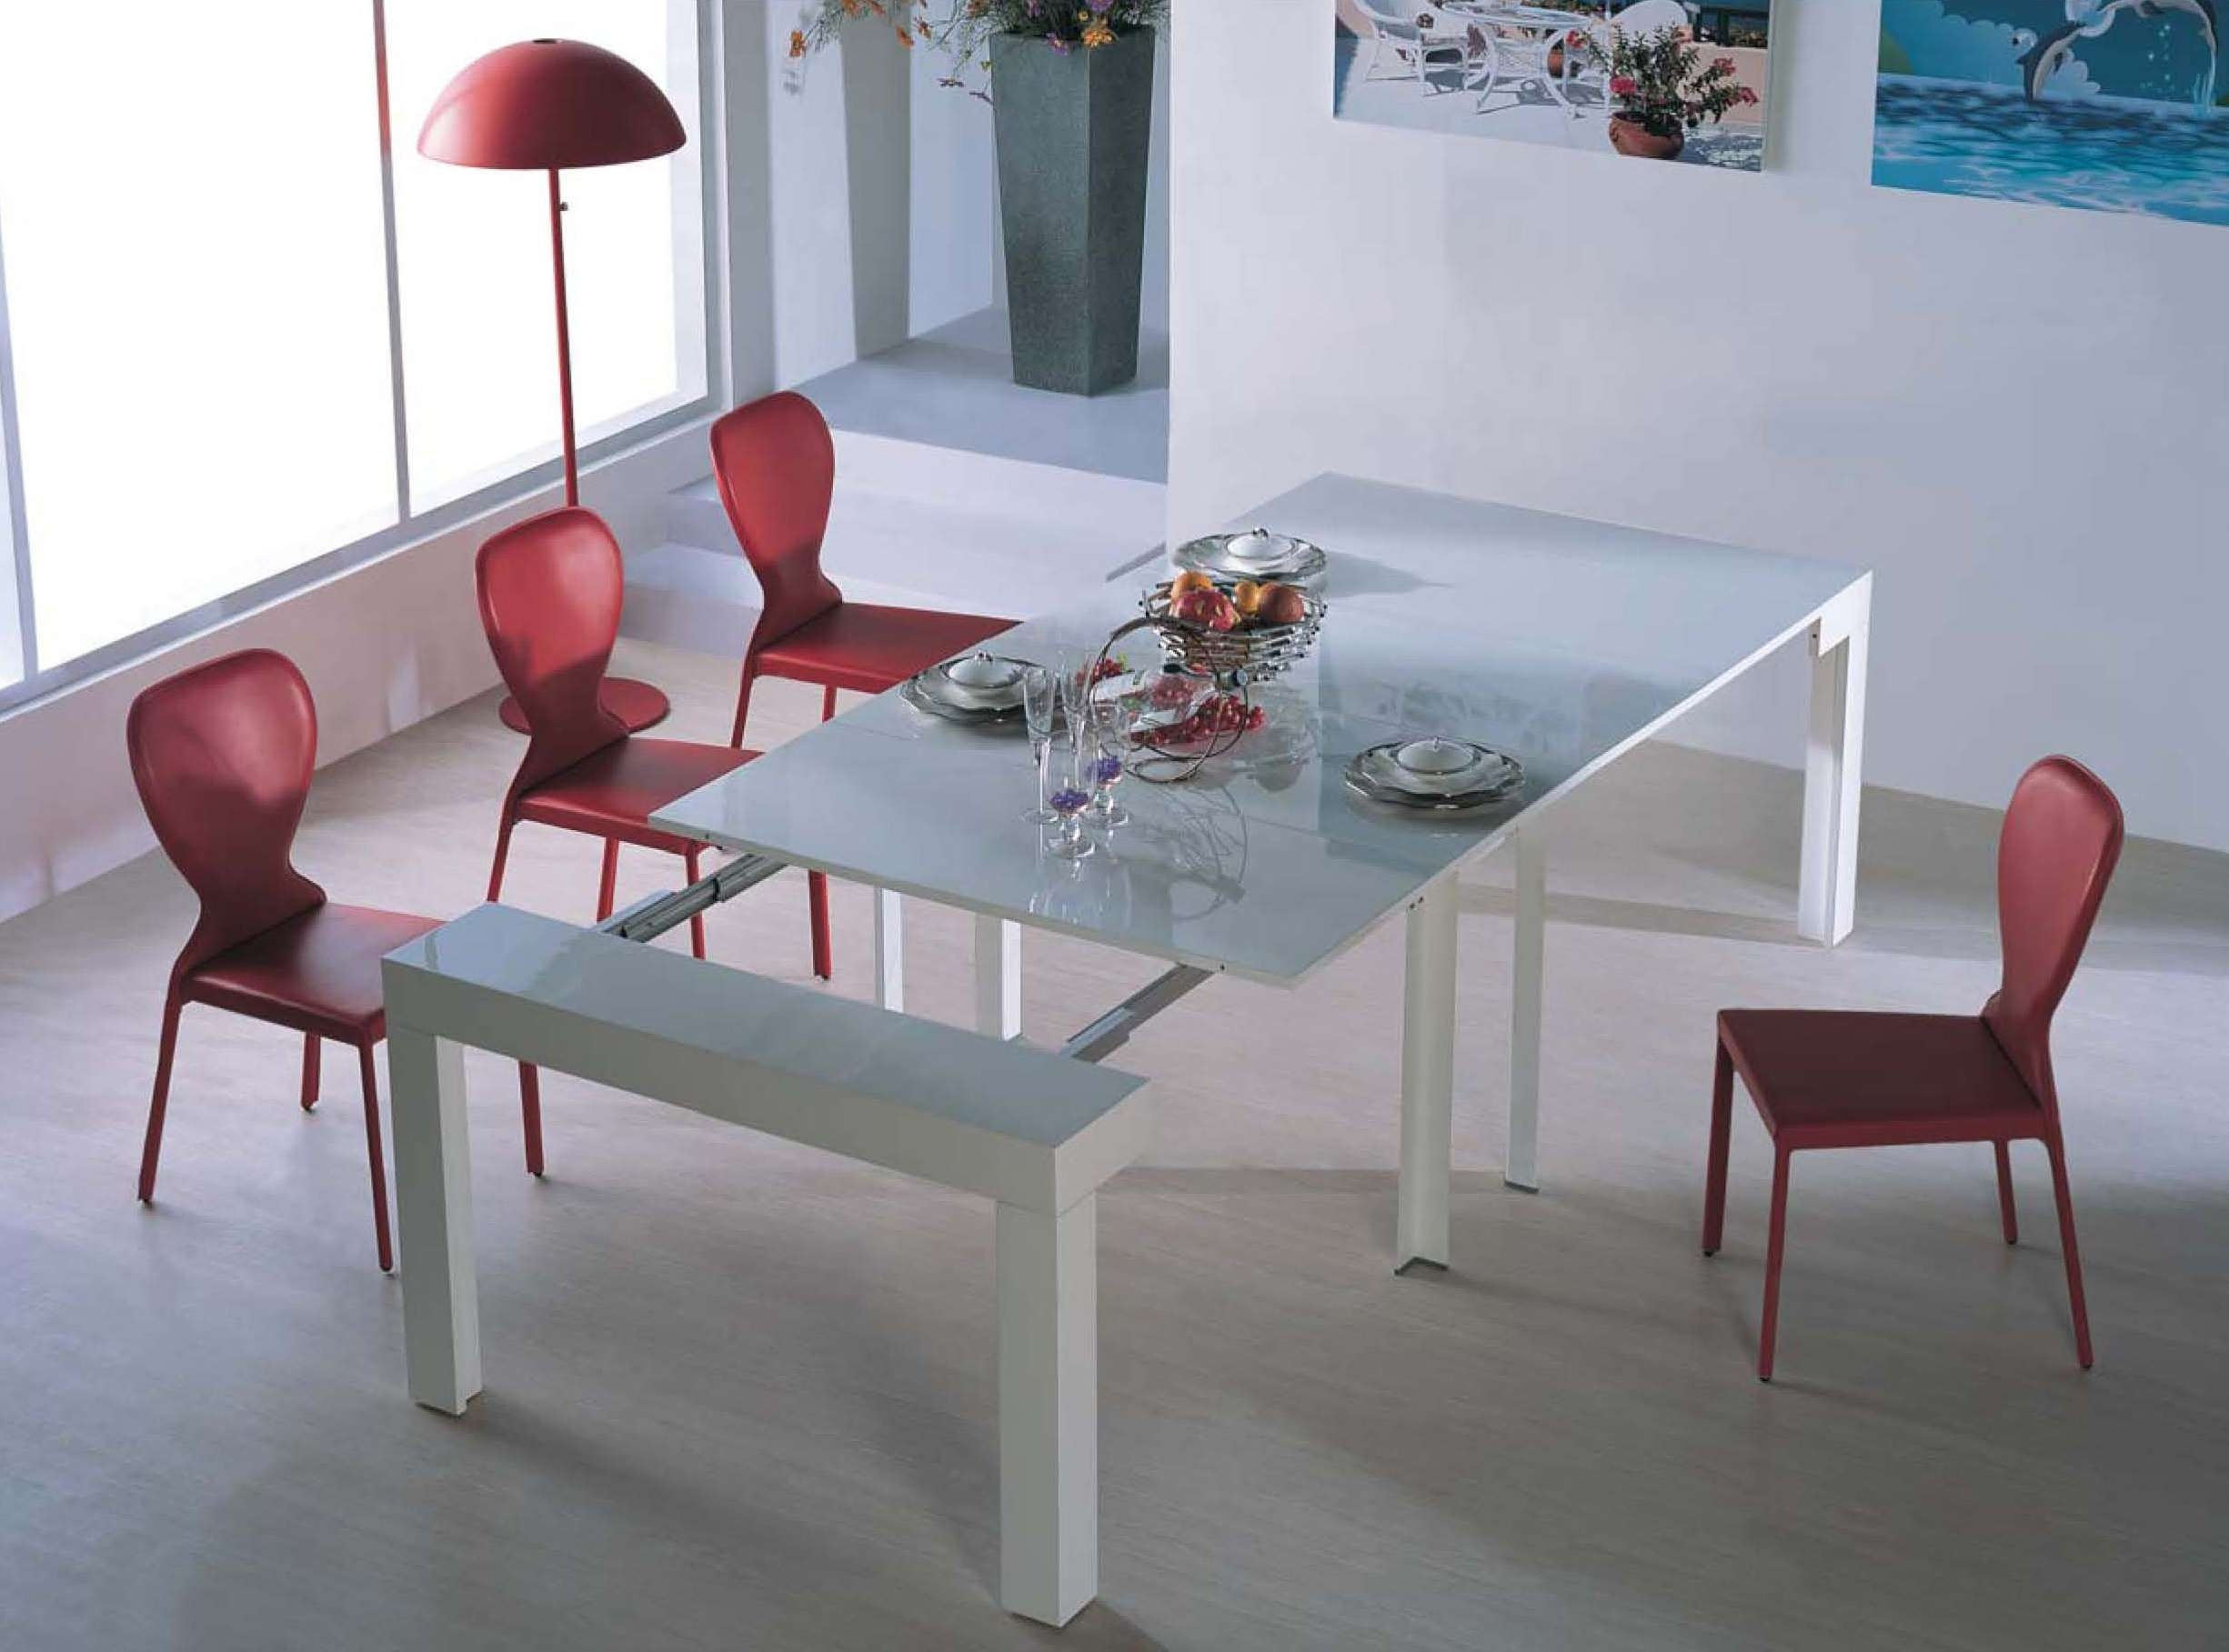 Expanding Tables For Cramped Dining Areas (View 19 of 20)